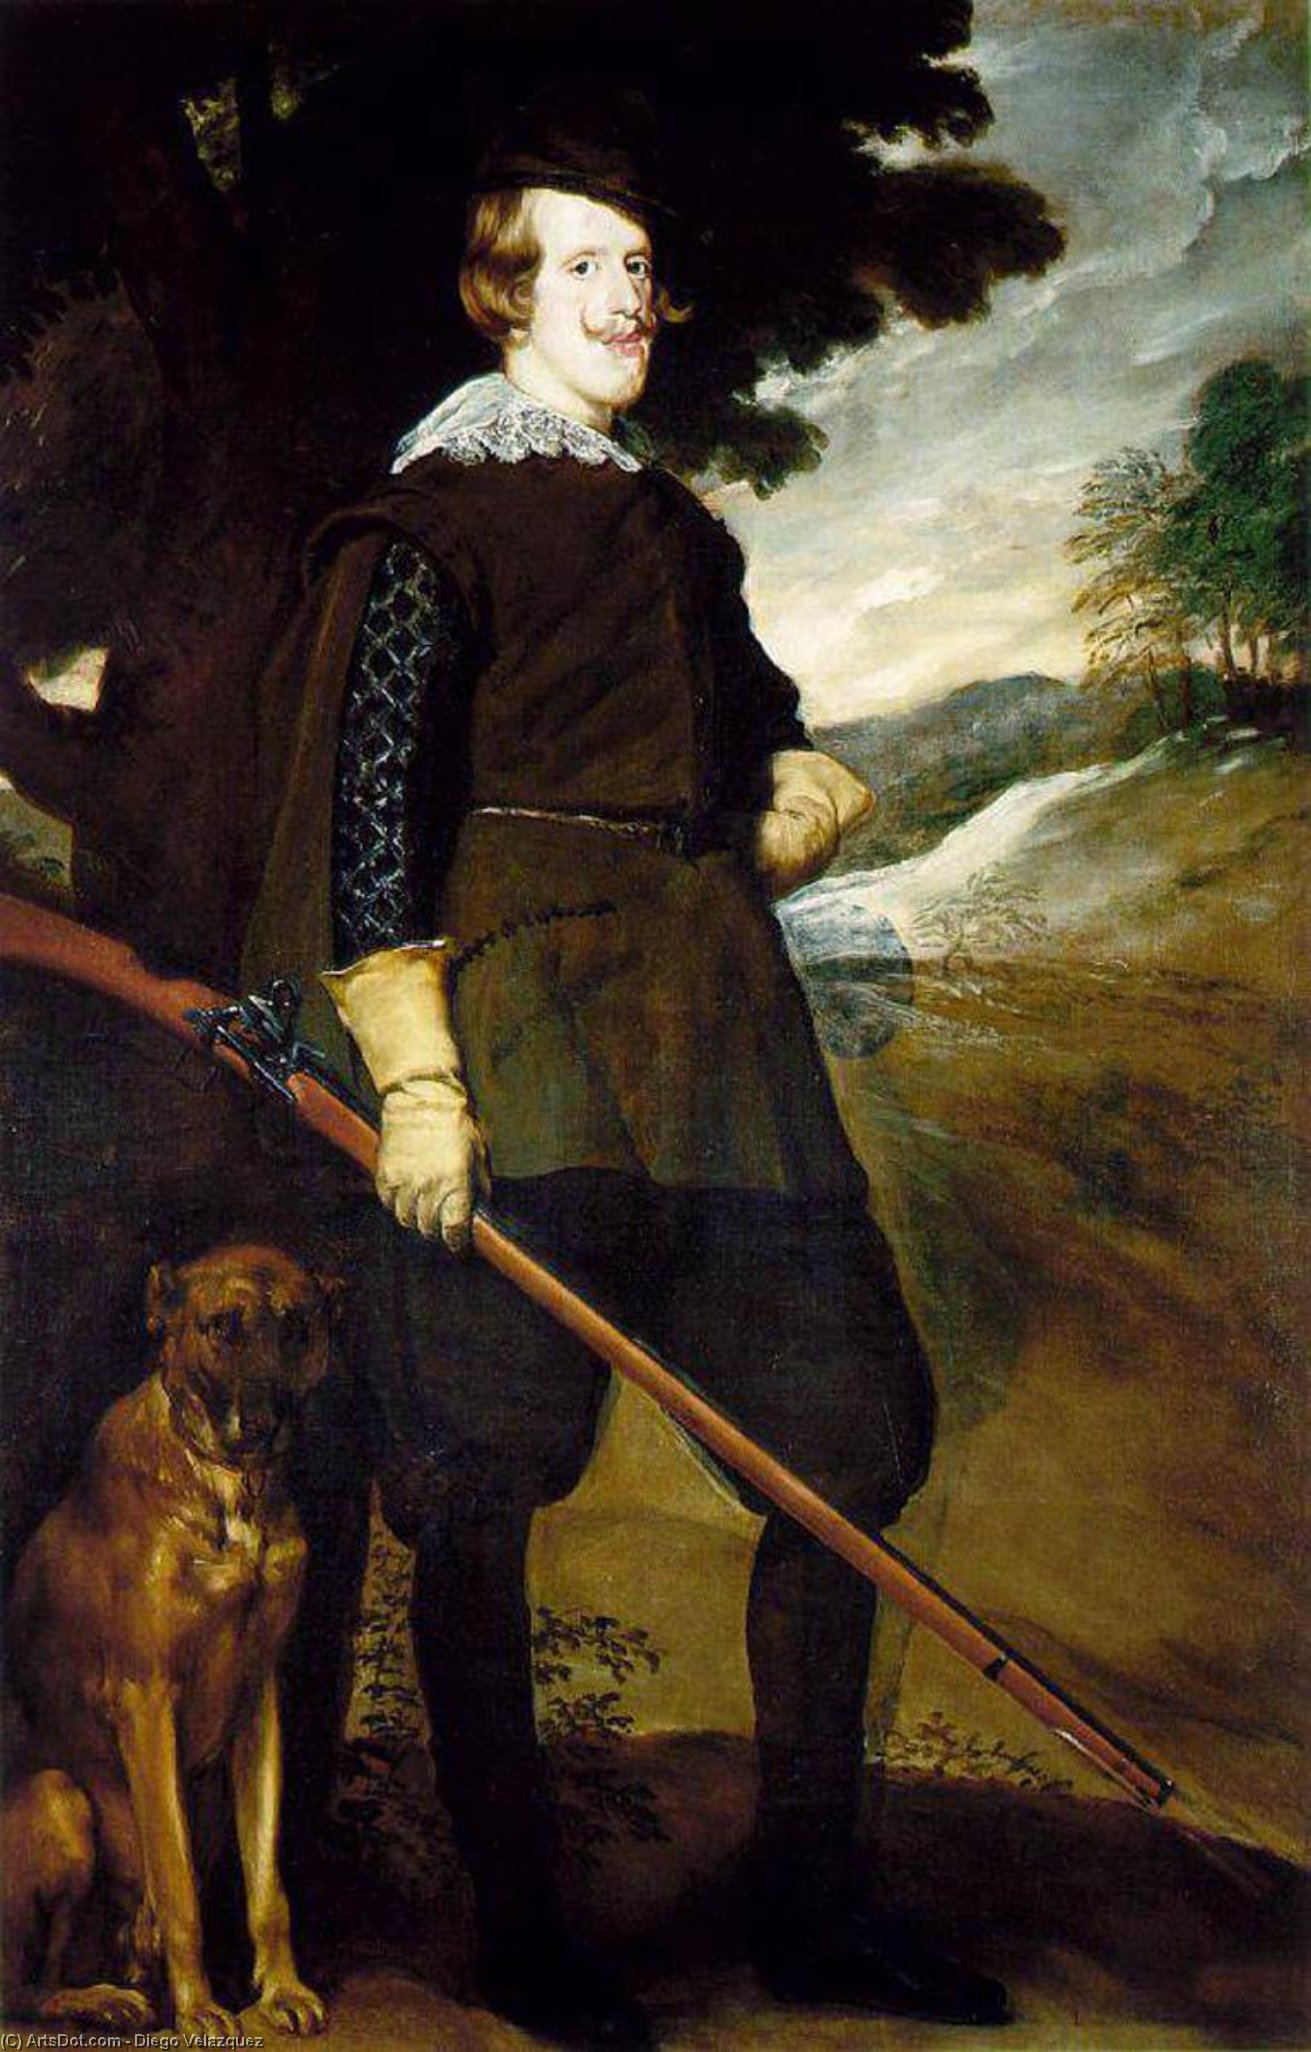 King Philip IV as a Huntsman, Oil On Canvas by Diego Velazquez (1599-1660, Spain)